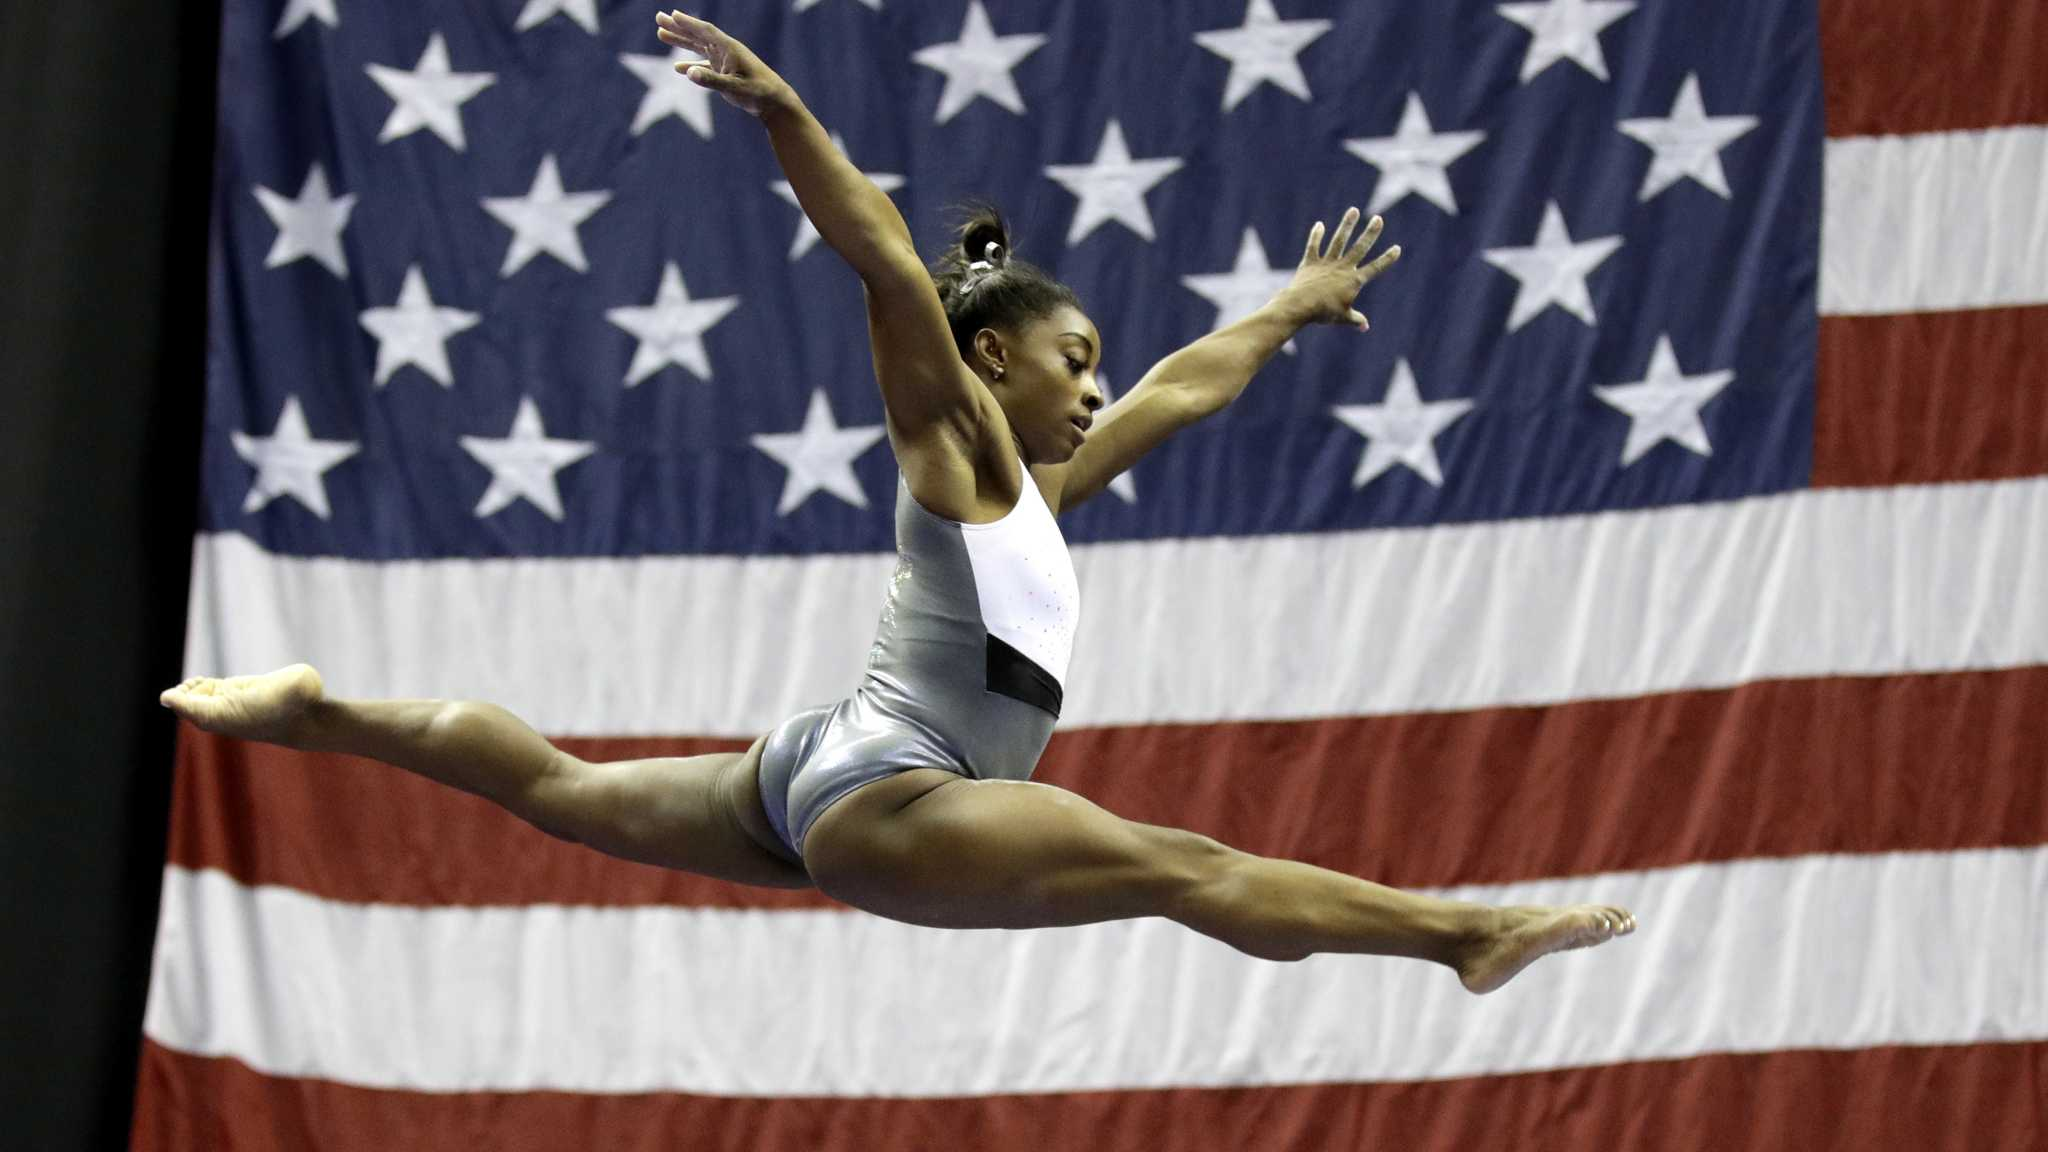 On TV/Radio: At nationals, Simone Biles in a league of her own